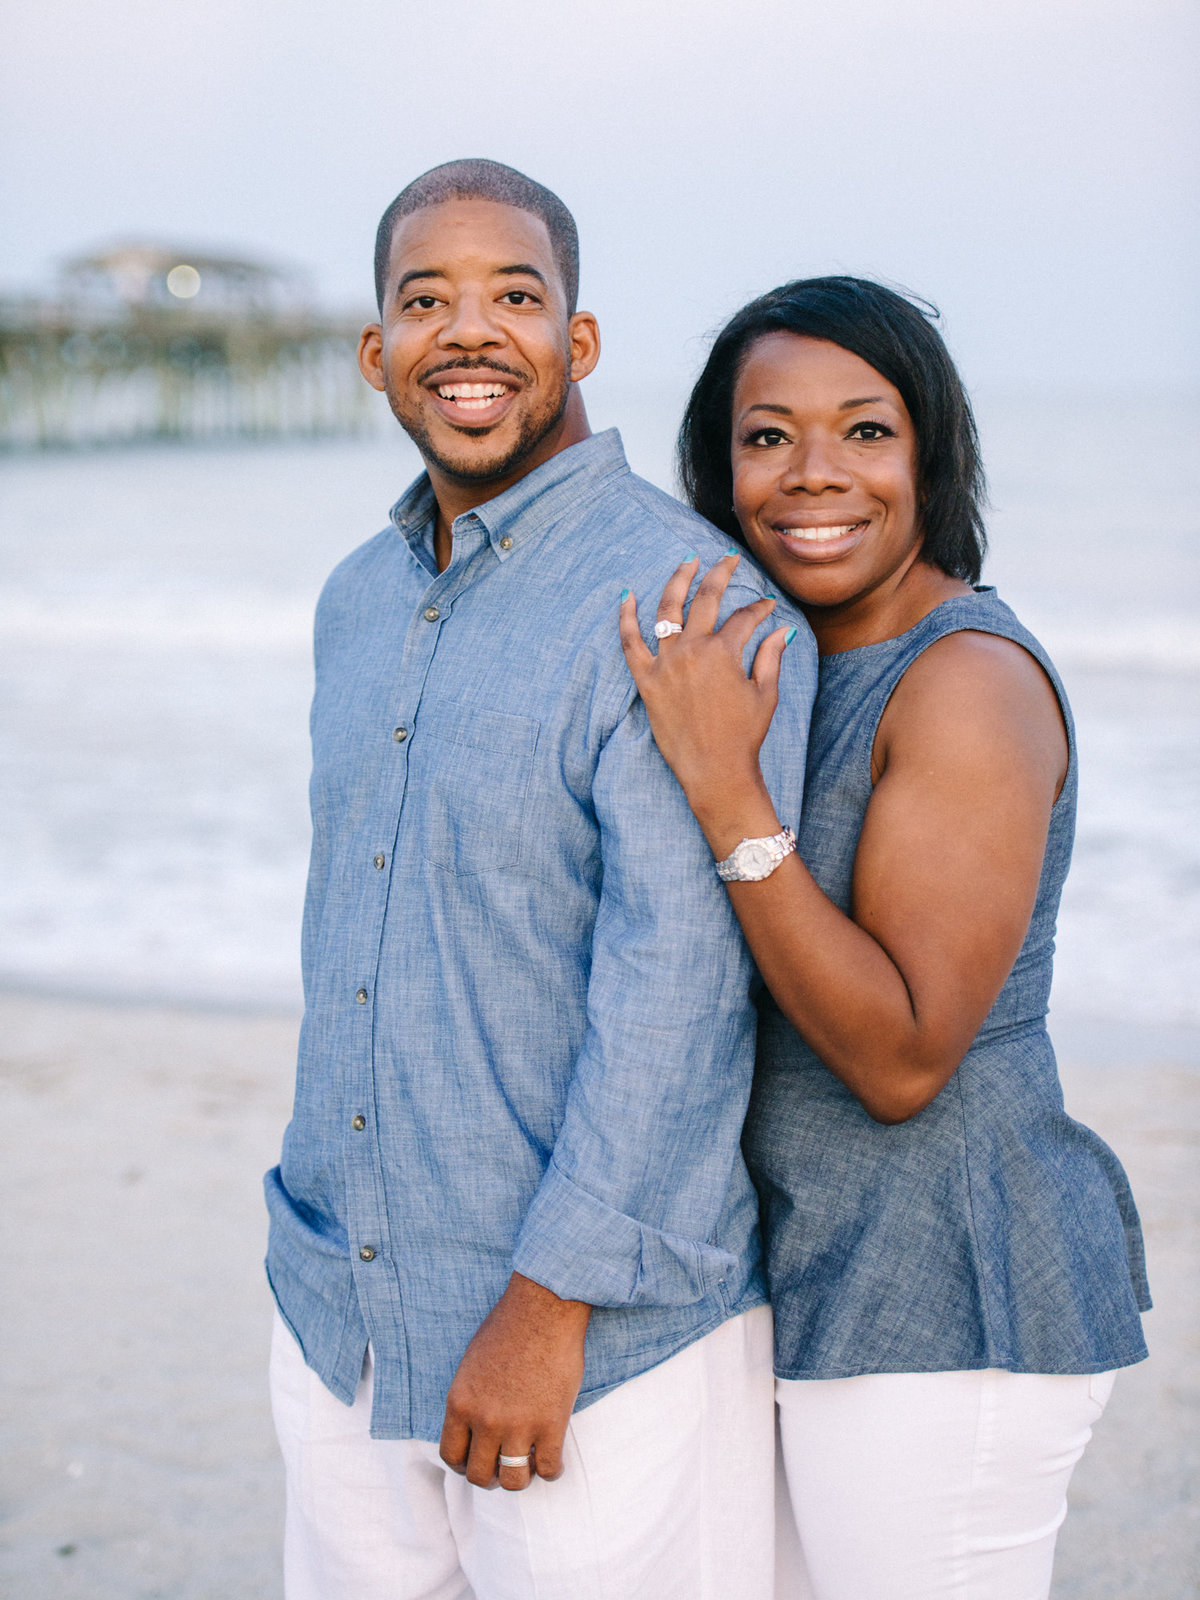 Family Beach Portraits in Myrtle Beach at Myrtle Beach State Park by Pasha Belman Photographer-22